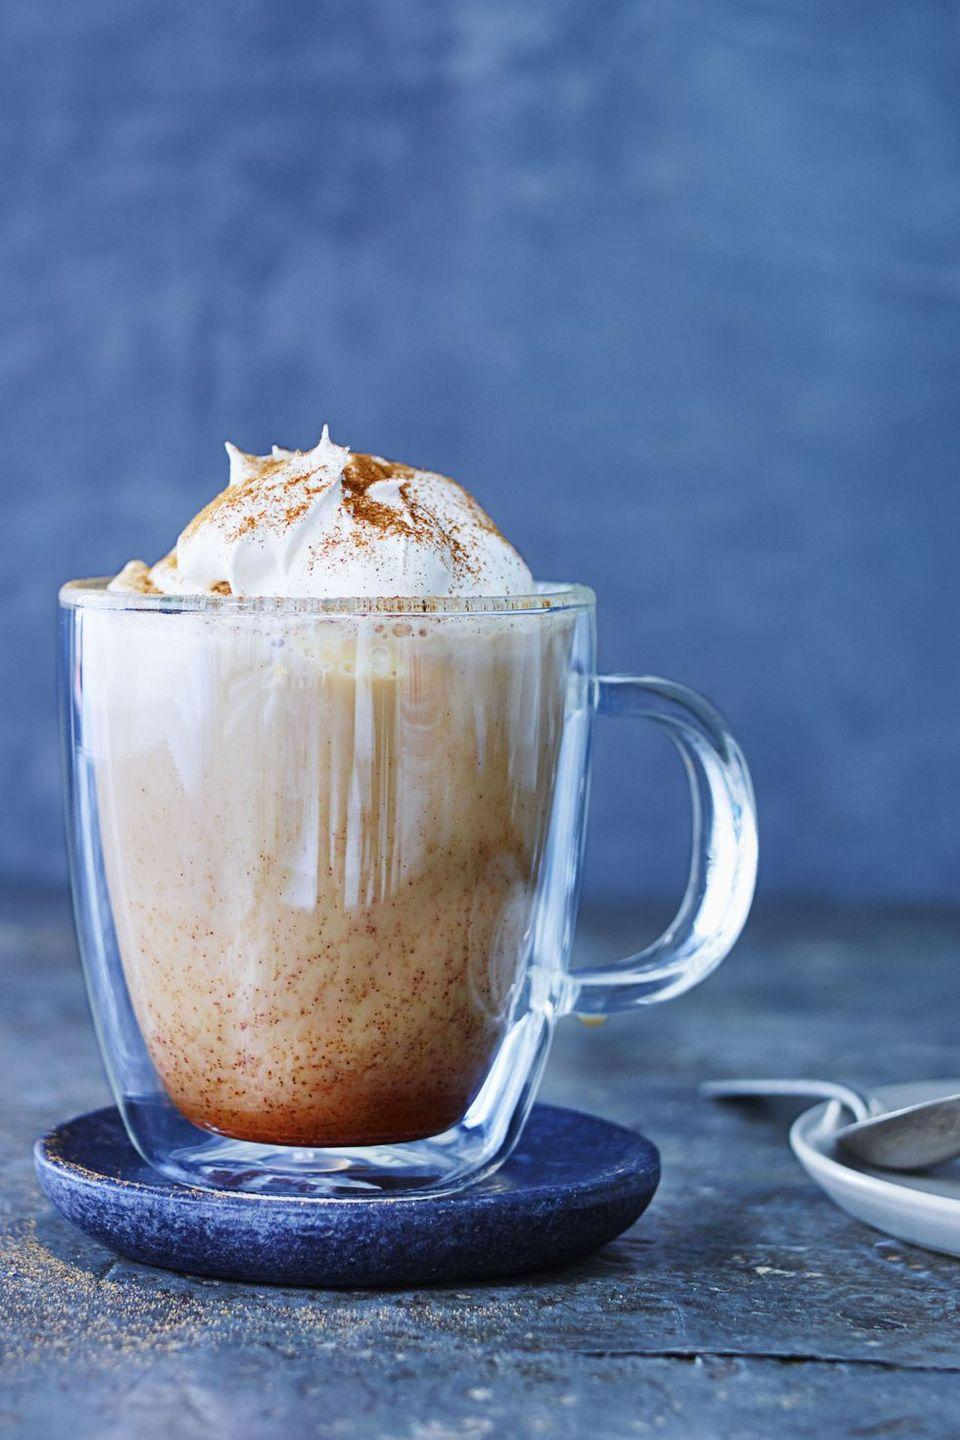 "<p>If you always say ""yes"" to a post-dinner coffee, consider swapping out your traditional cappuccino for a seasonal favorite.</p><p><em><a href=""https://www.goodhousekeeping.com/food-recipes/cooking/tips/a24776/pumpkin-spice-latte-copycat-recipe/"" rel=""nofollow noopener"" target=""_blank"" data-ylk=""slk:Get the recipe for Pumpkin Spice Latte »"" class=""link rapid-noclick-resp"">Get the recipe for Pumpkin Spice Latte »</a></em> </p>"